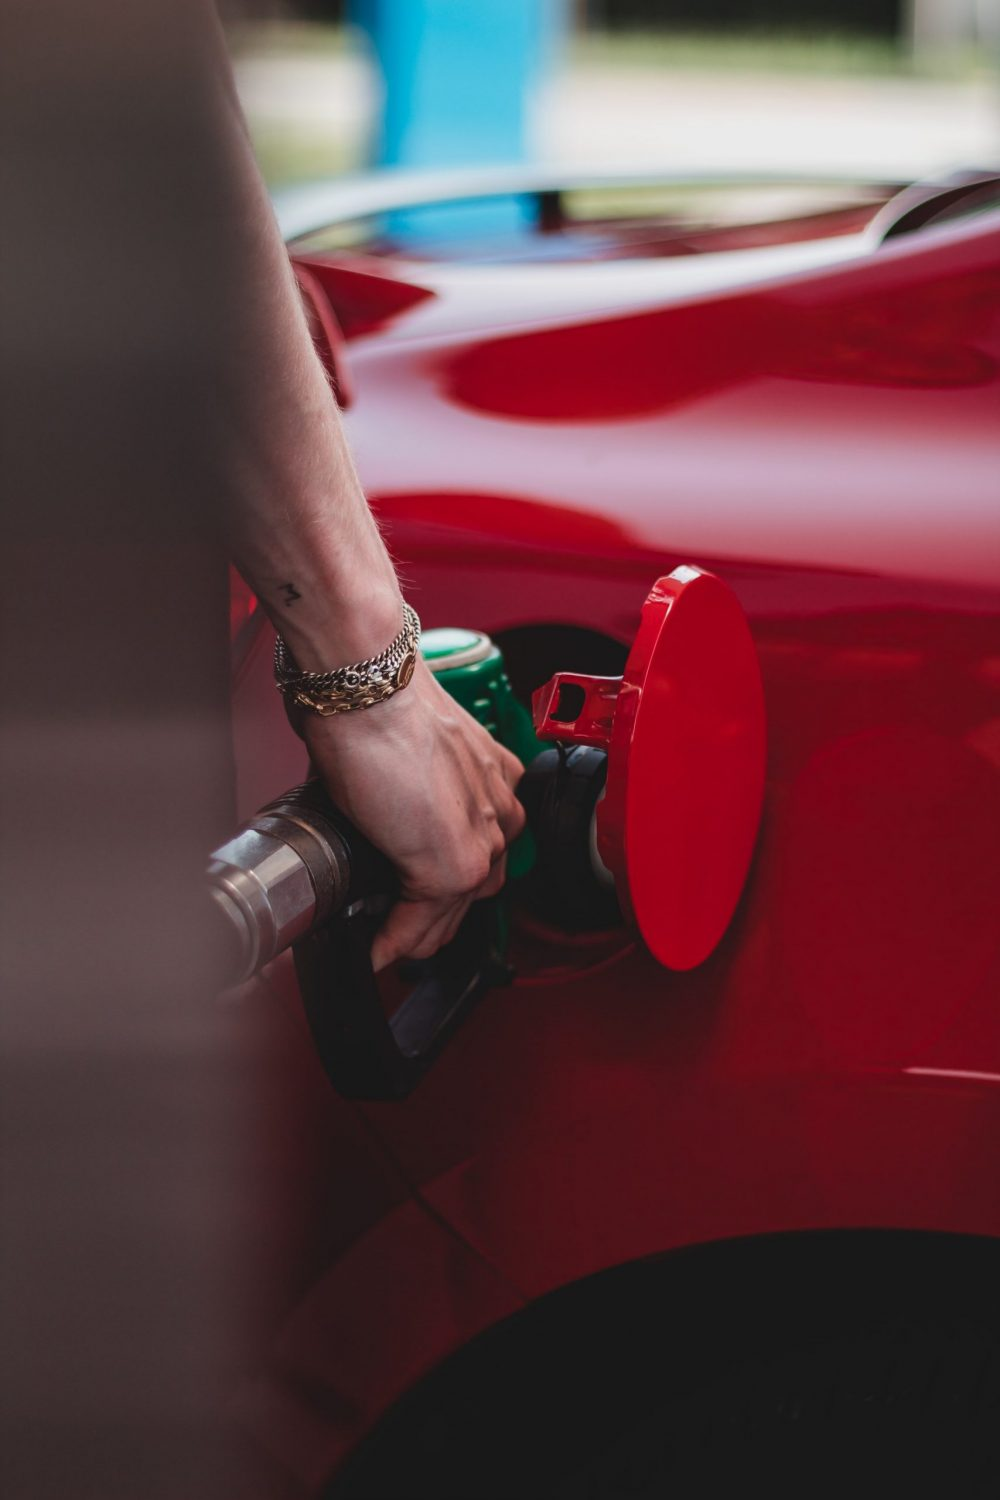 A person putting fuel into a car